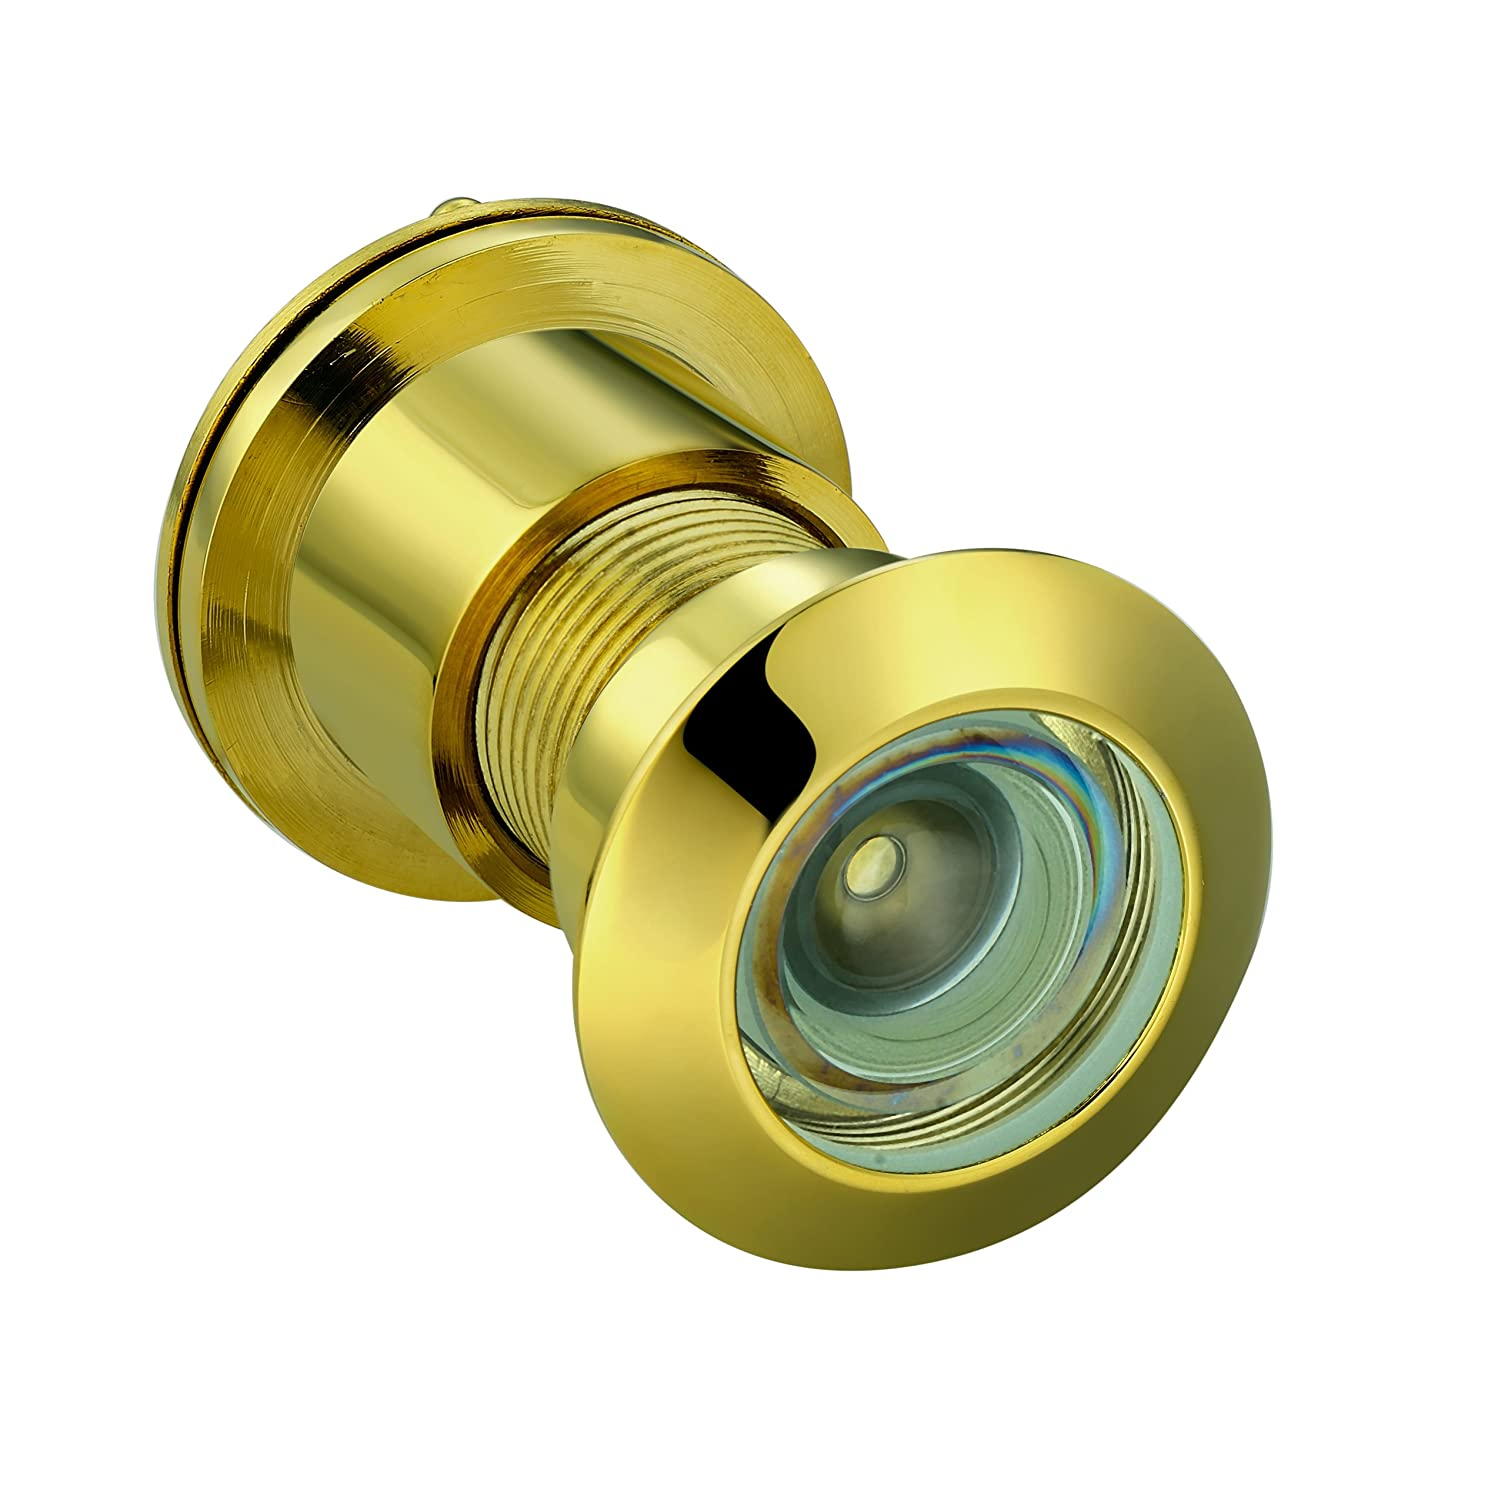 Ltd TOGU TG3828NG-SC Brass UL Listed 220-degree Door Viewer with Heavy Duty Privacy Cover for 1-3//5 to 2-1//6 Doors Polished Gold Finish Xiaxin hardware Products Co